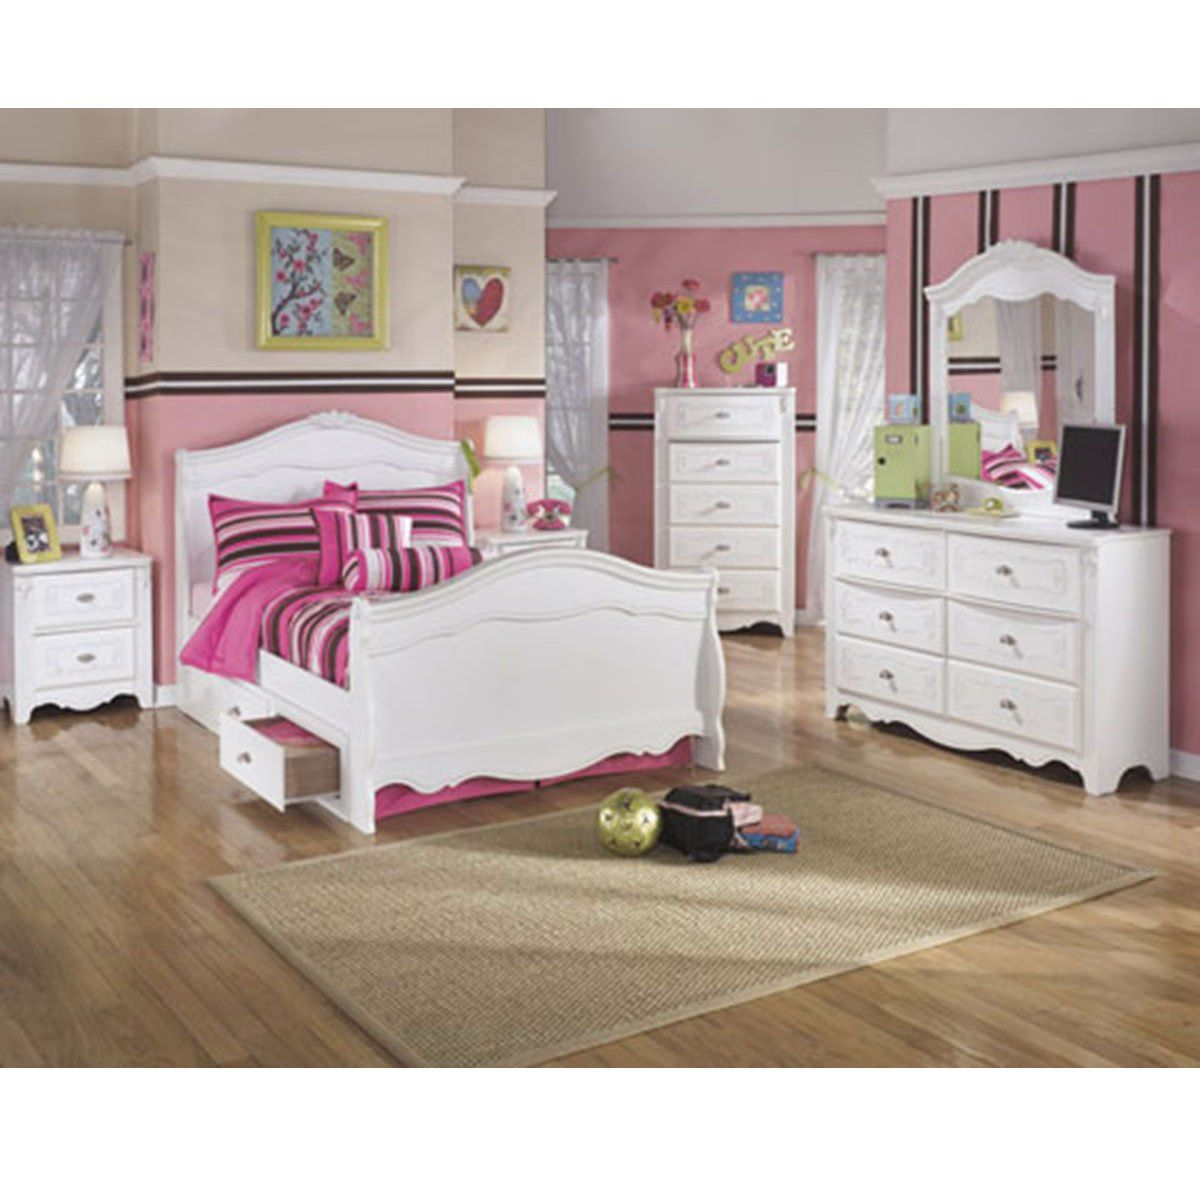 Best Princess Full Bed With Storage Girls Bedroom Sets 400 x 300